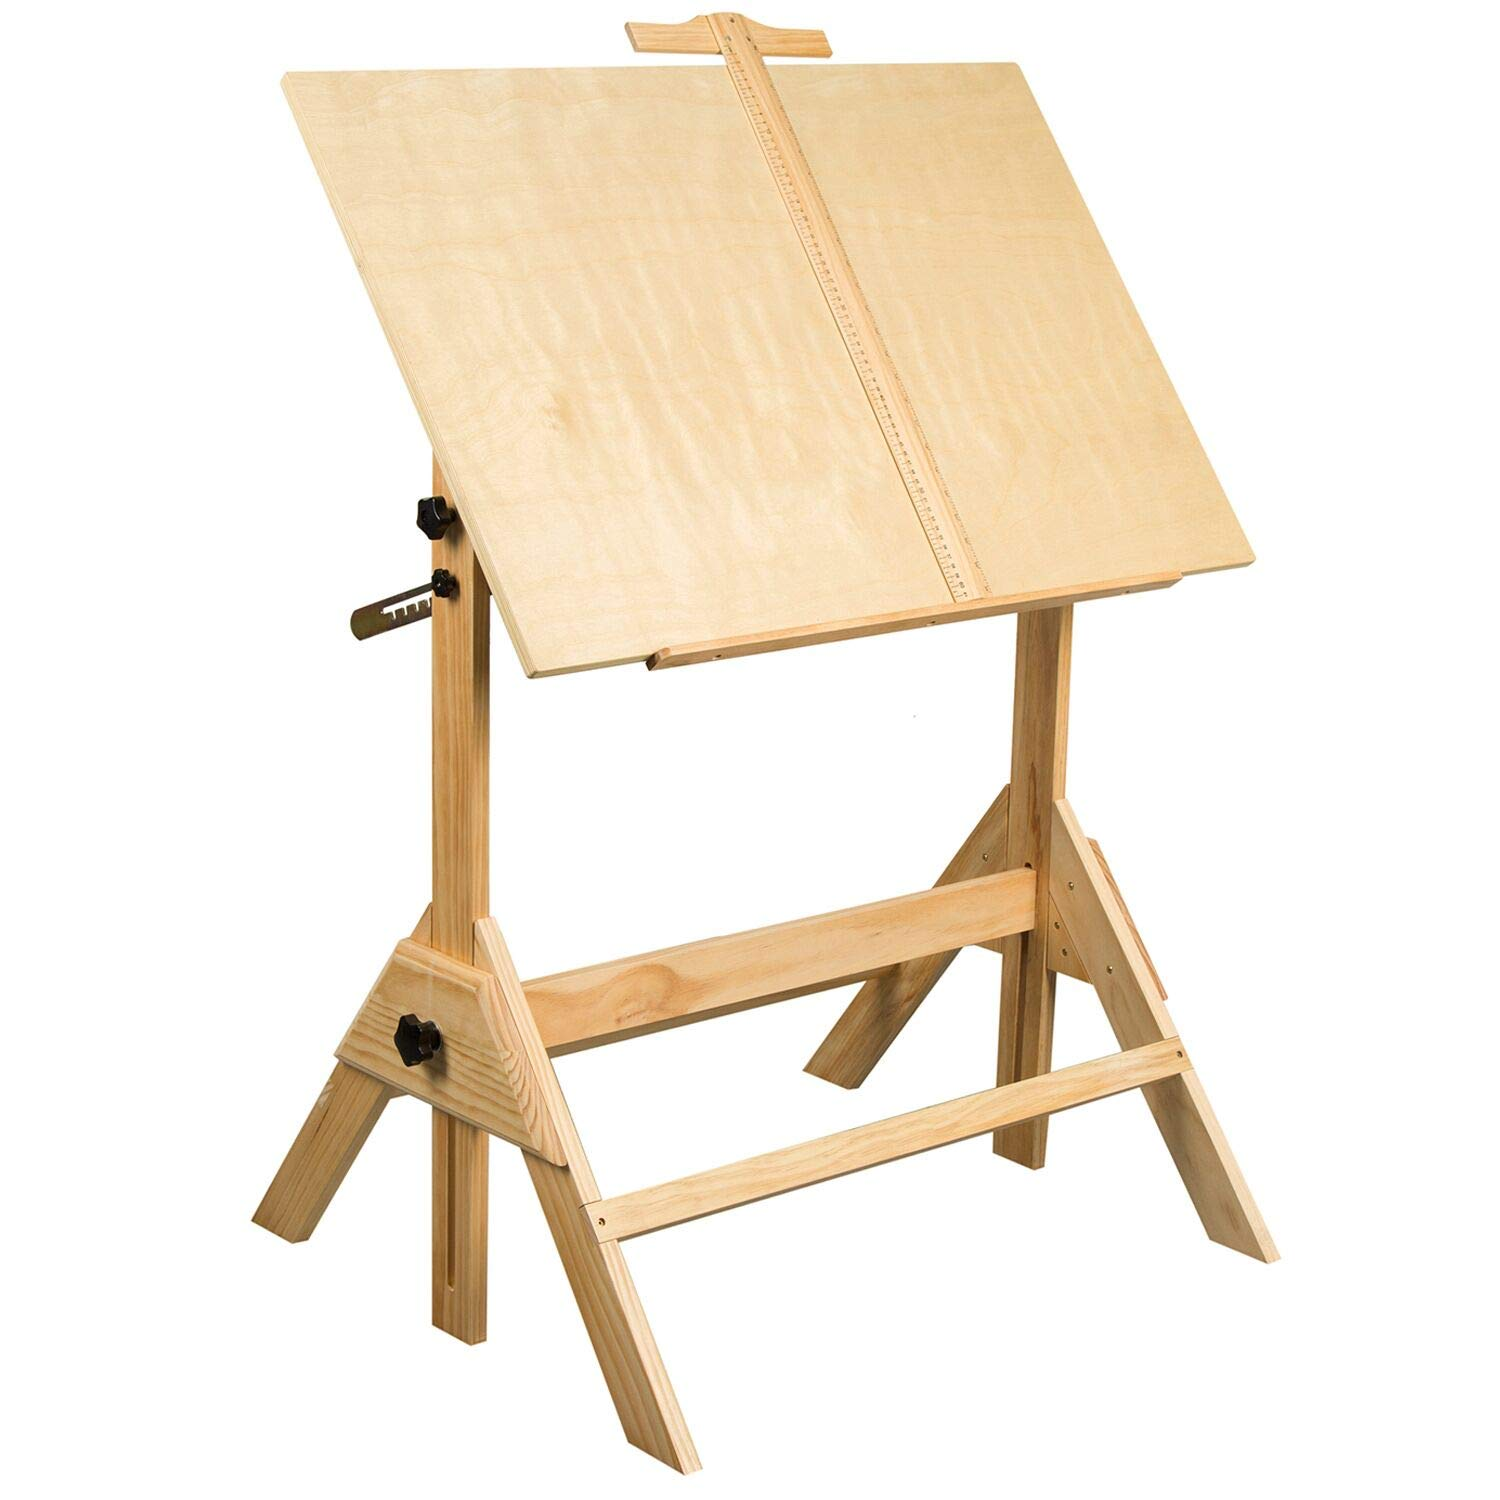 Wood Drafting Table by MEEDEN - Height Adjustable Drawing Desk with Tiltable Tabletop for Artwork, Graphic Design, Reading and Writing, 36in